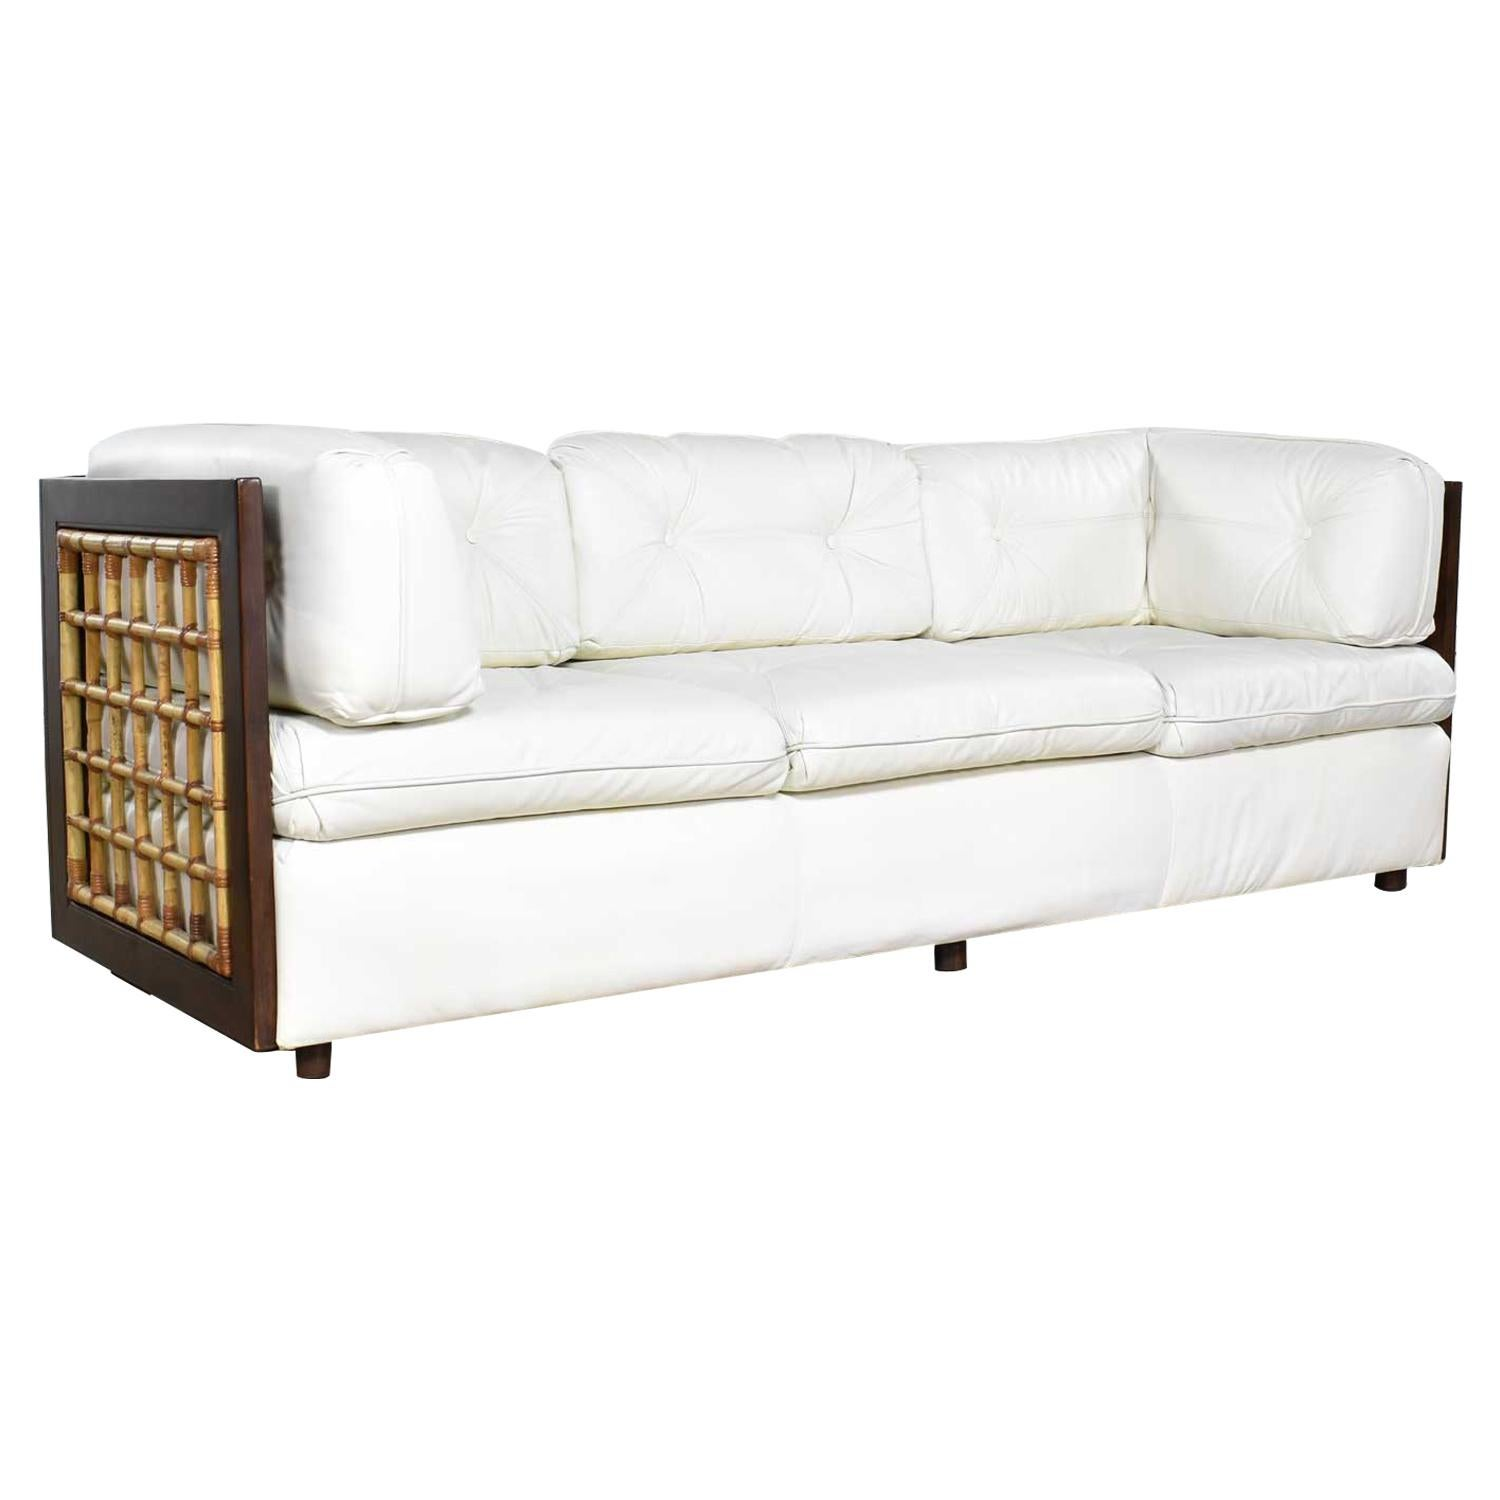 Super Modern White Leather And Dark Wood Cube Case Sofa With Rattan Panel Inserts Onthecornerstone Fun Painted Chair Ideas Images Onthecornerstoneorg